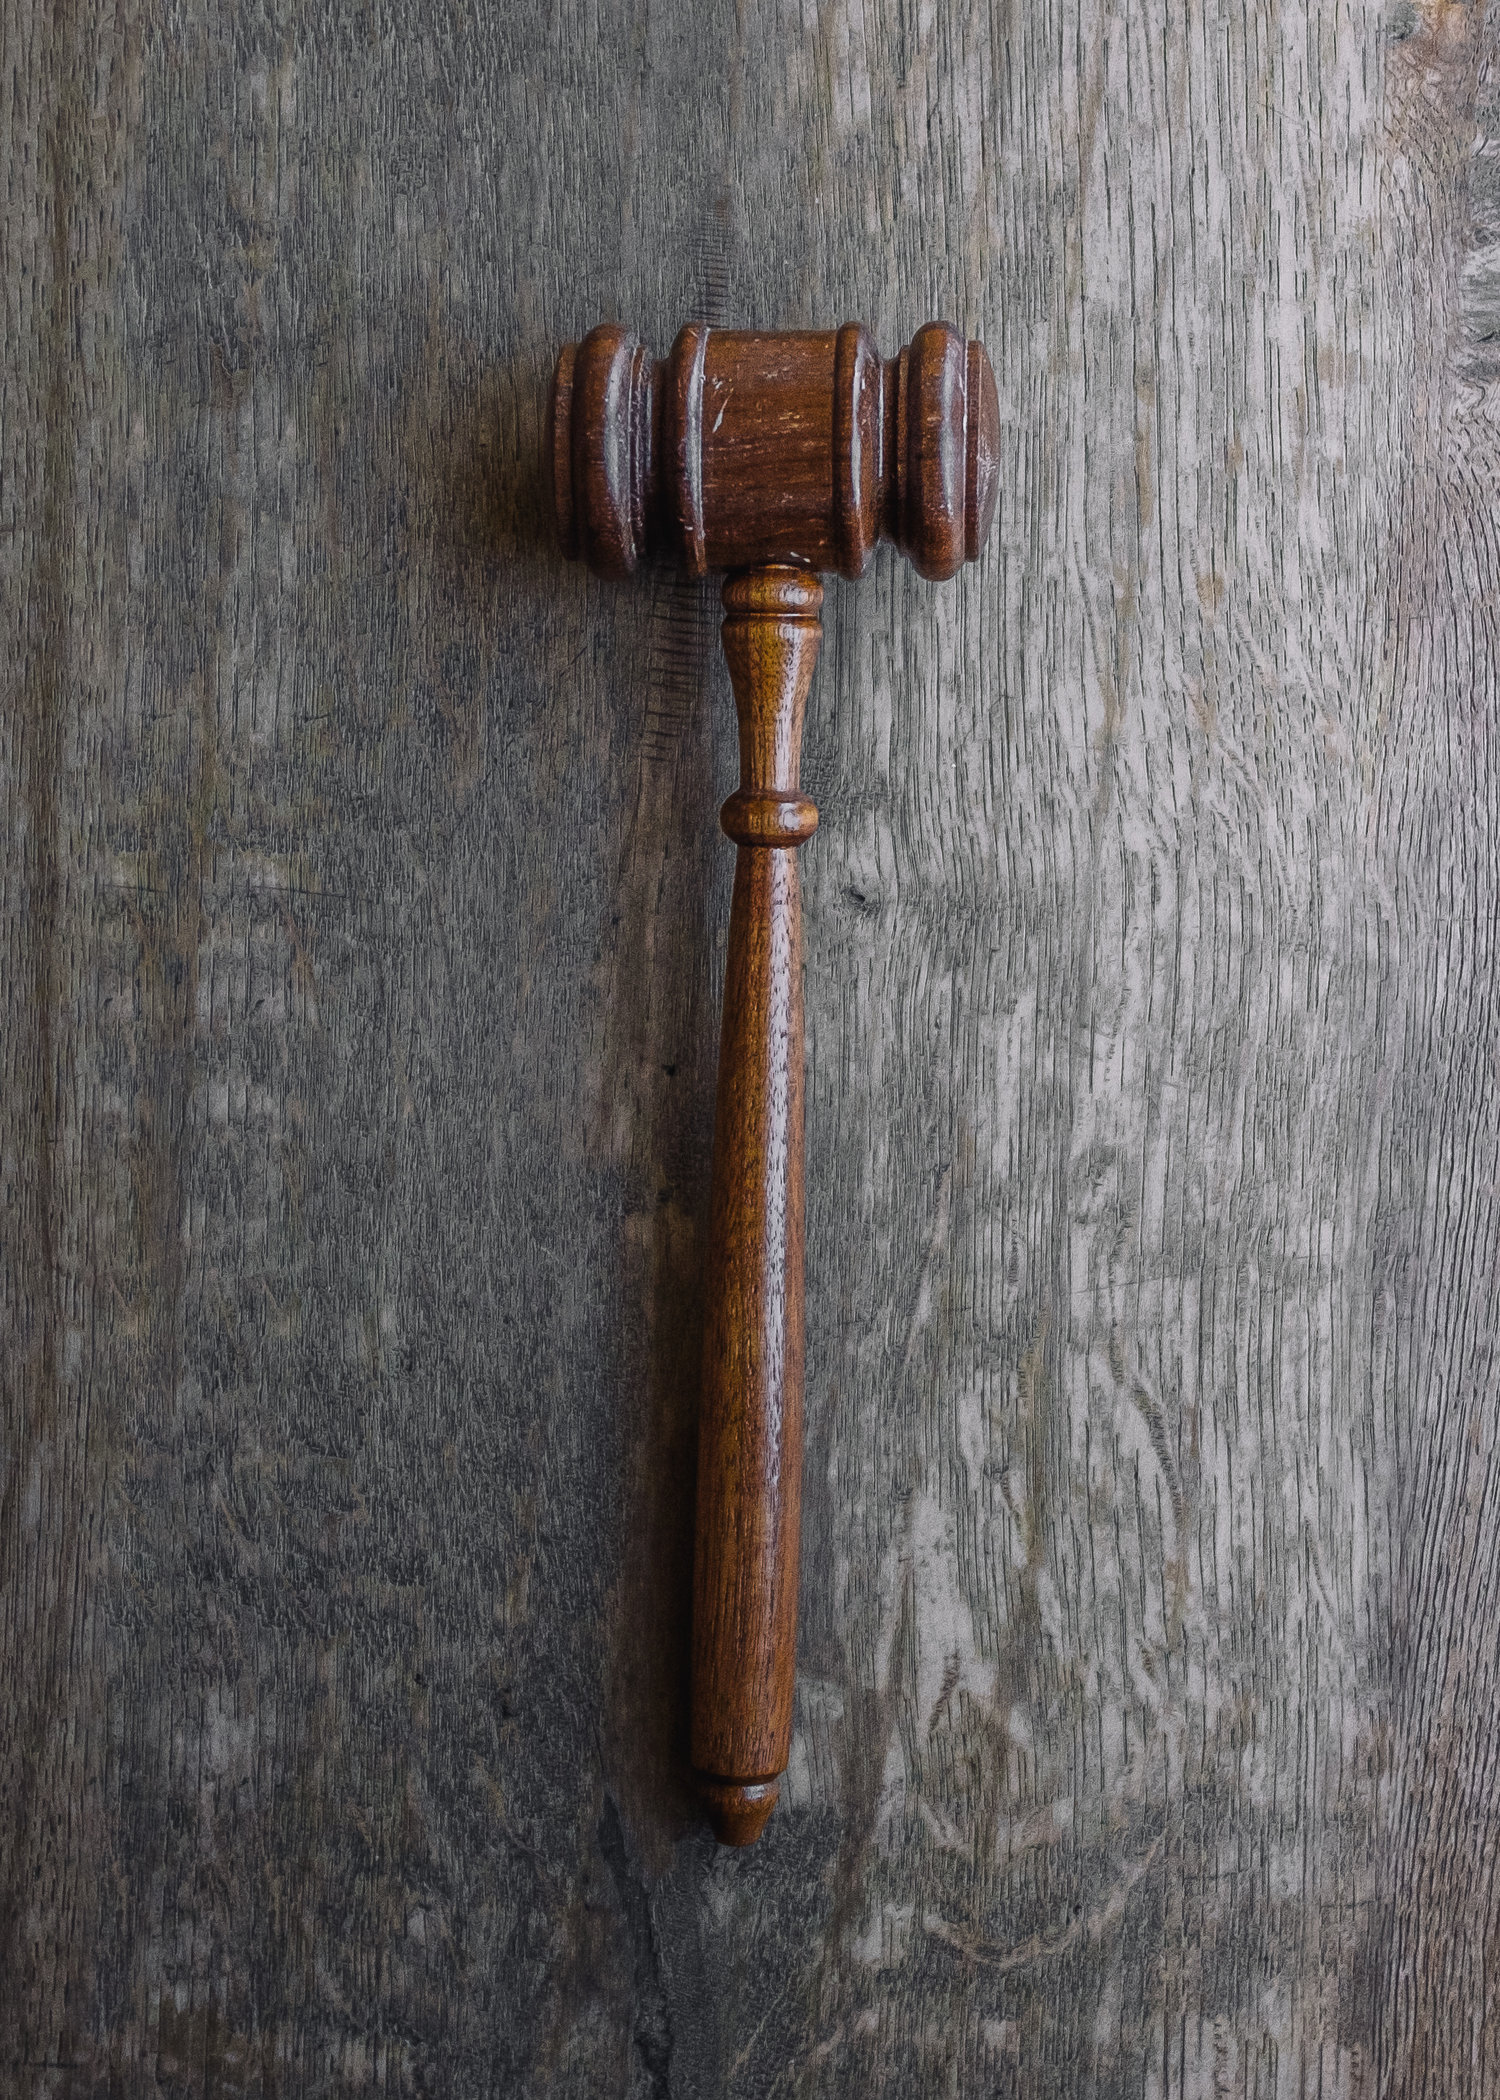 Radvocate - 6 Spectrum Lawsuits and What You Should Know